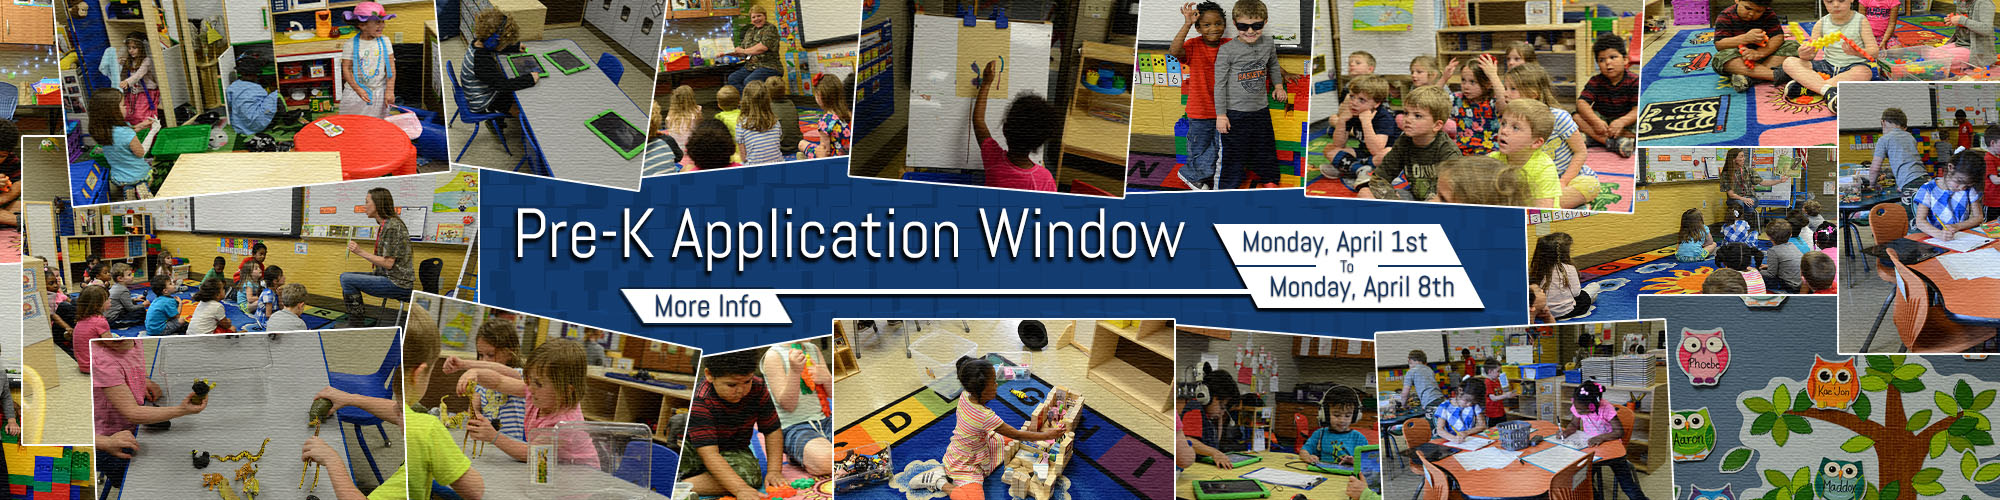 Pre-K Students engaged in various activities, text stating that Pre-K Application window runs from Monday, April 1 until Monday, April 8.  Click for more information.